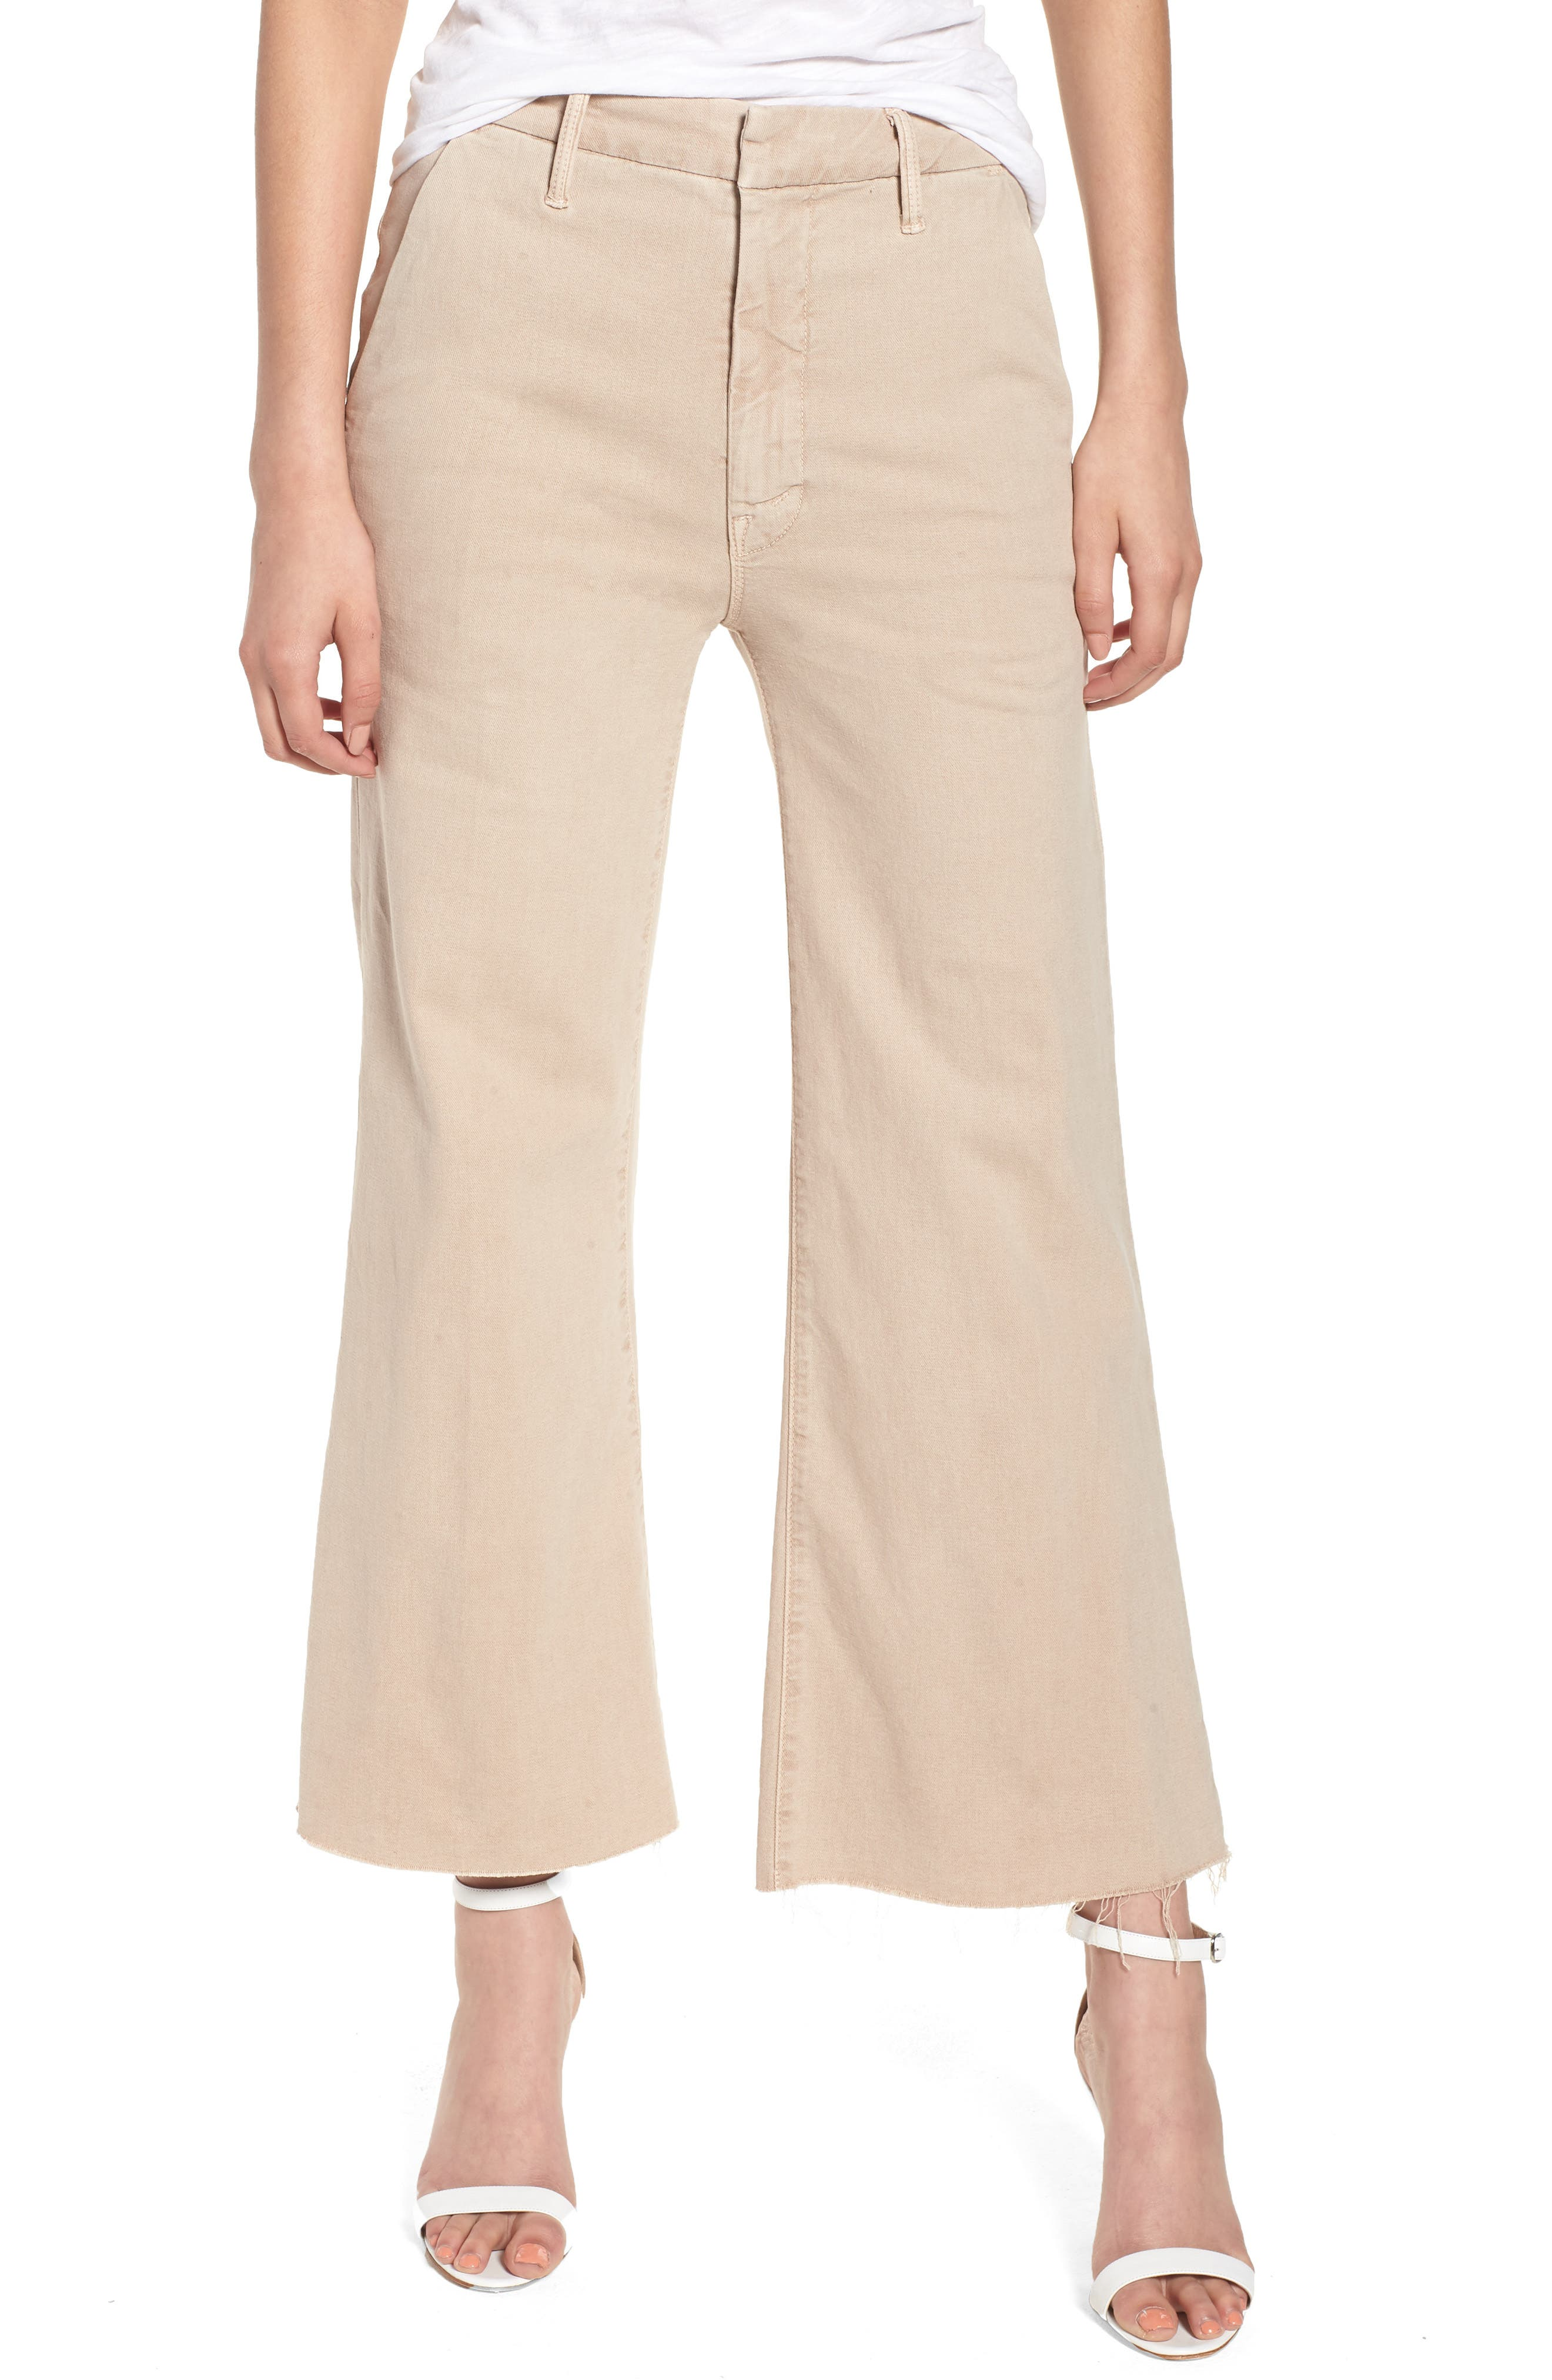 The Roller Fray Crop Wide Leg Jeans,                         Main,                         color, 250